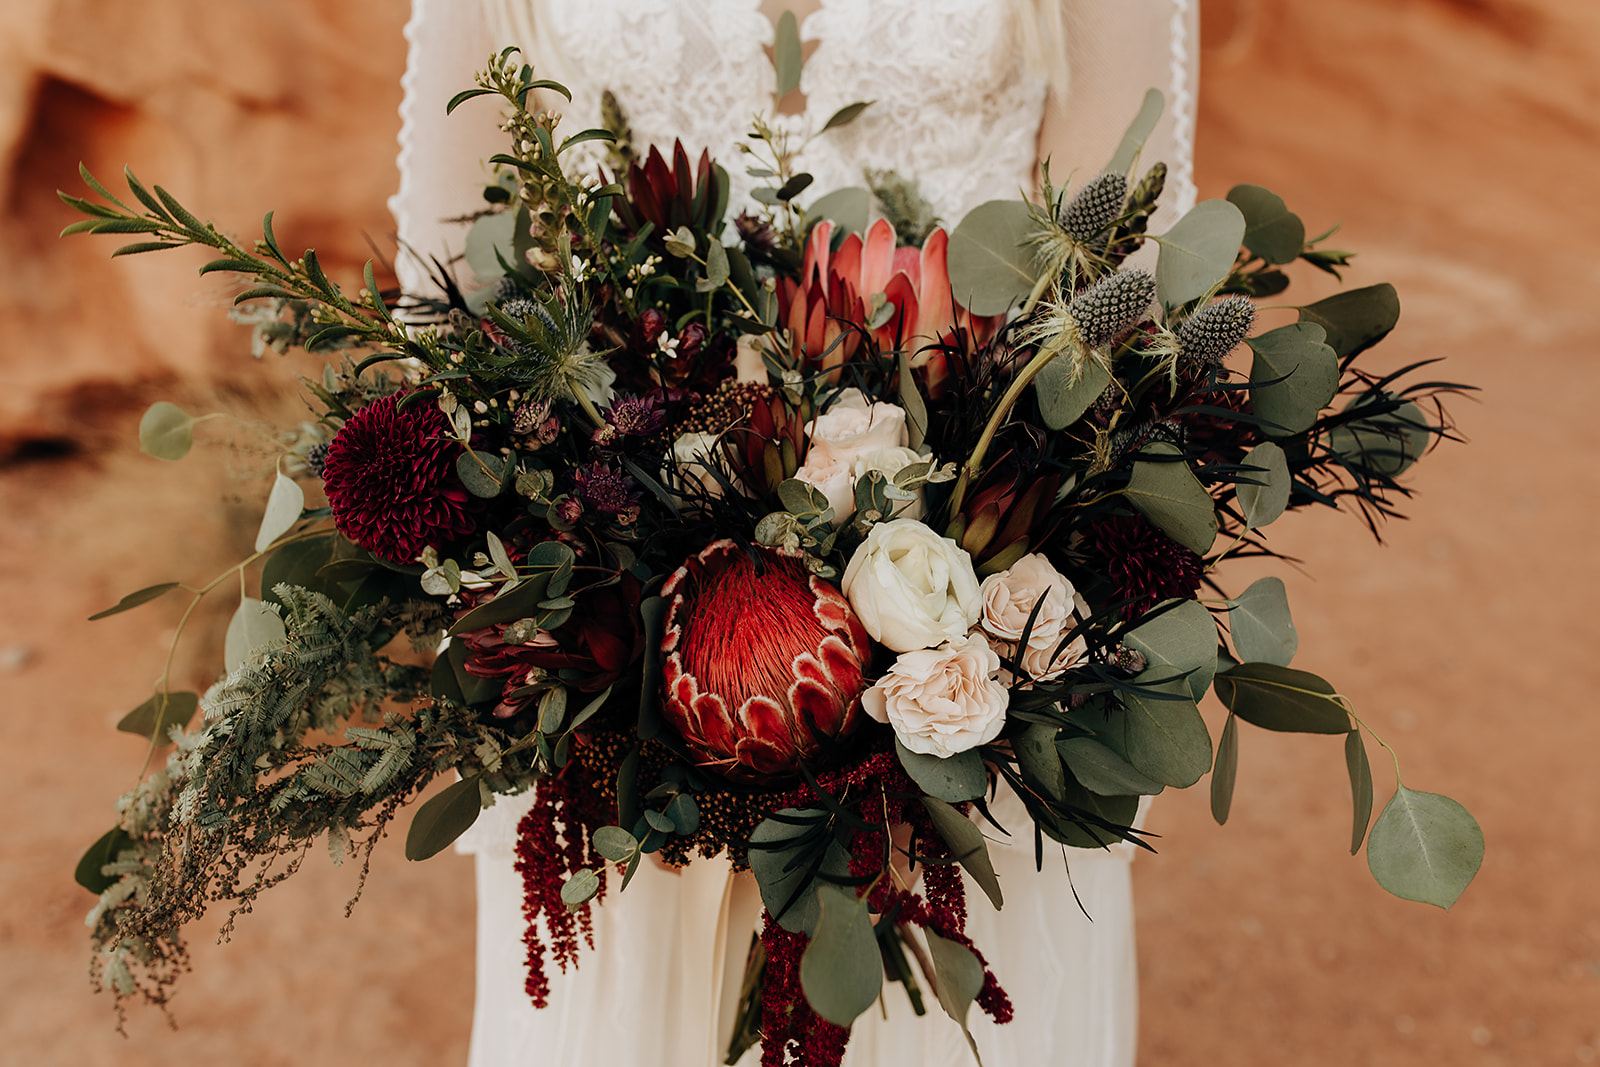 Elopement Wedding Flower Guide By Season (and Bouquet Inspiration!)